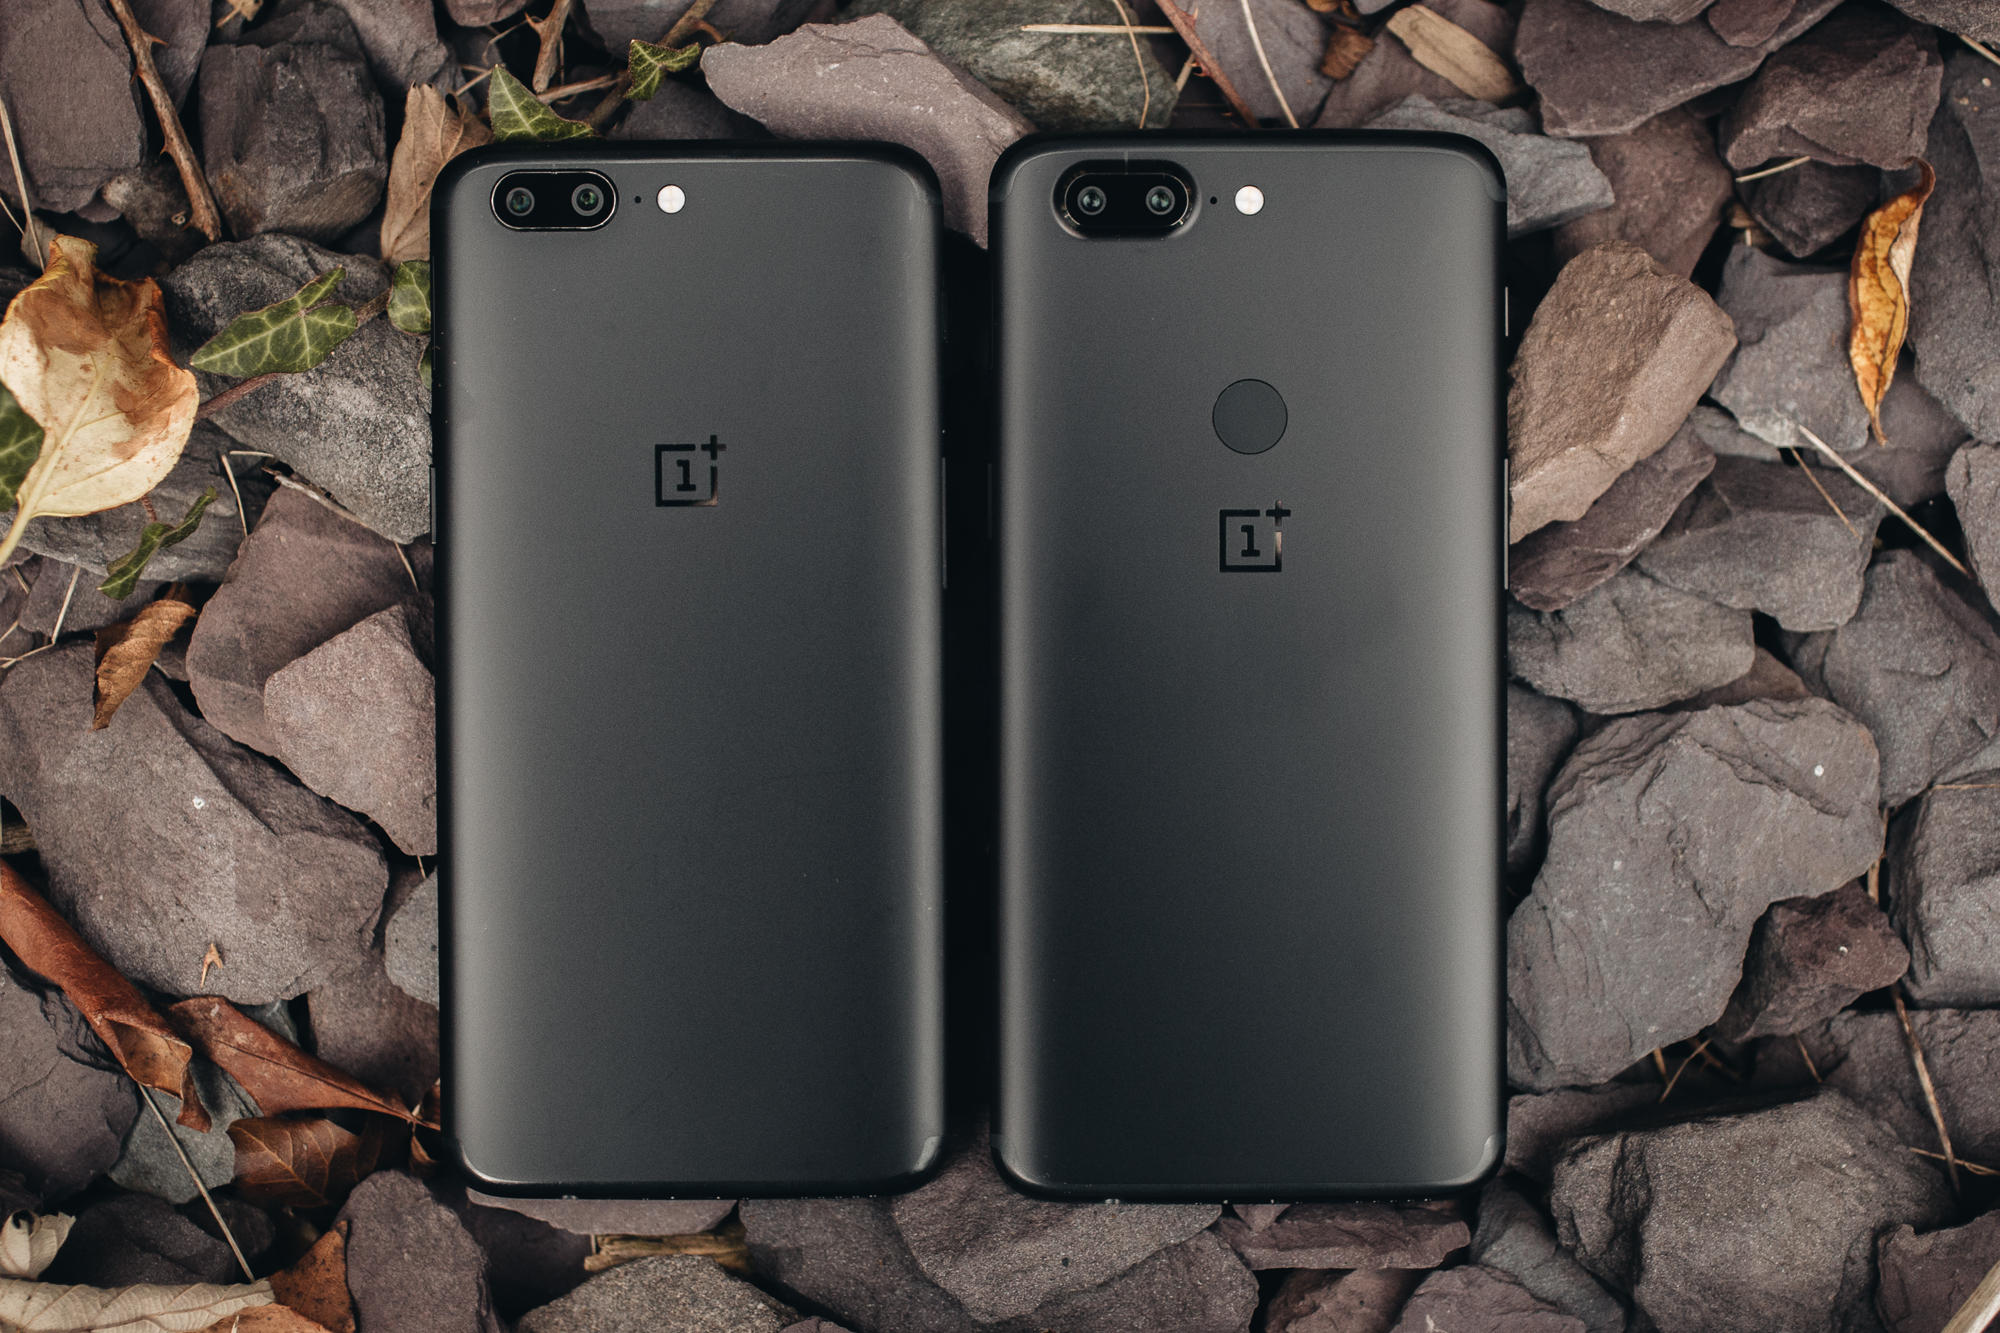 oneplus-5t-product-6